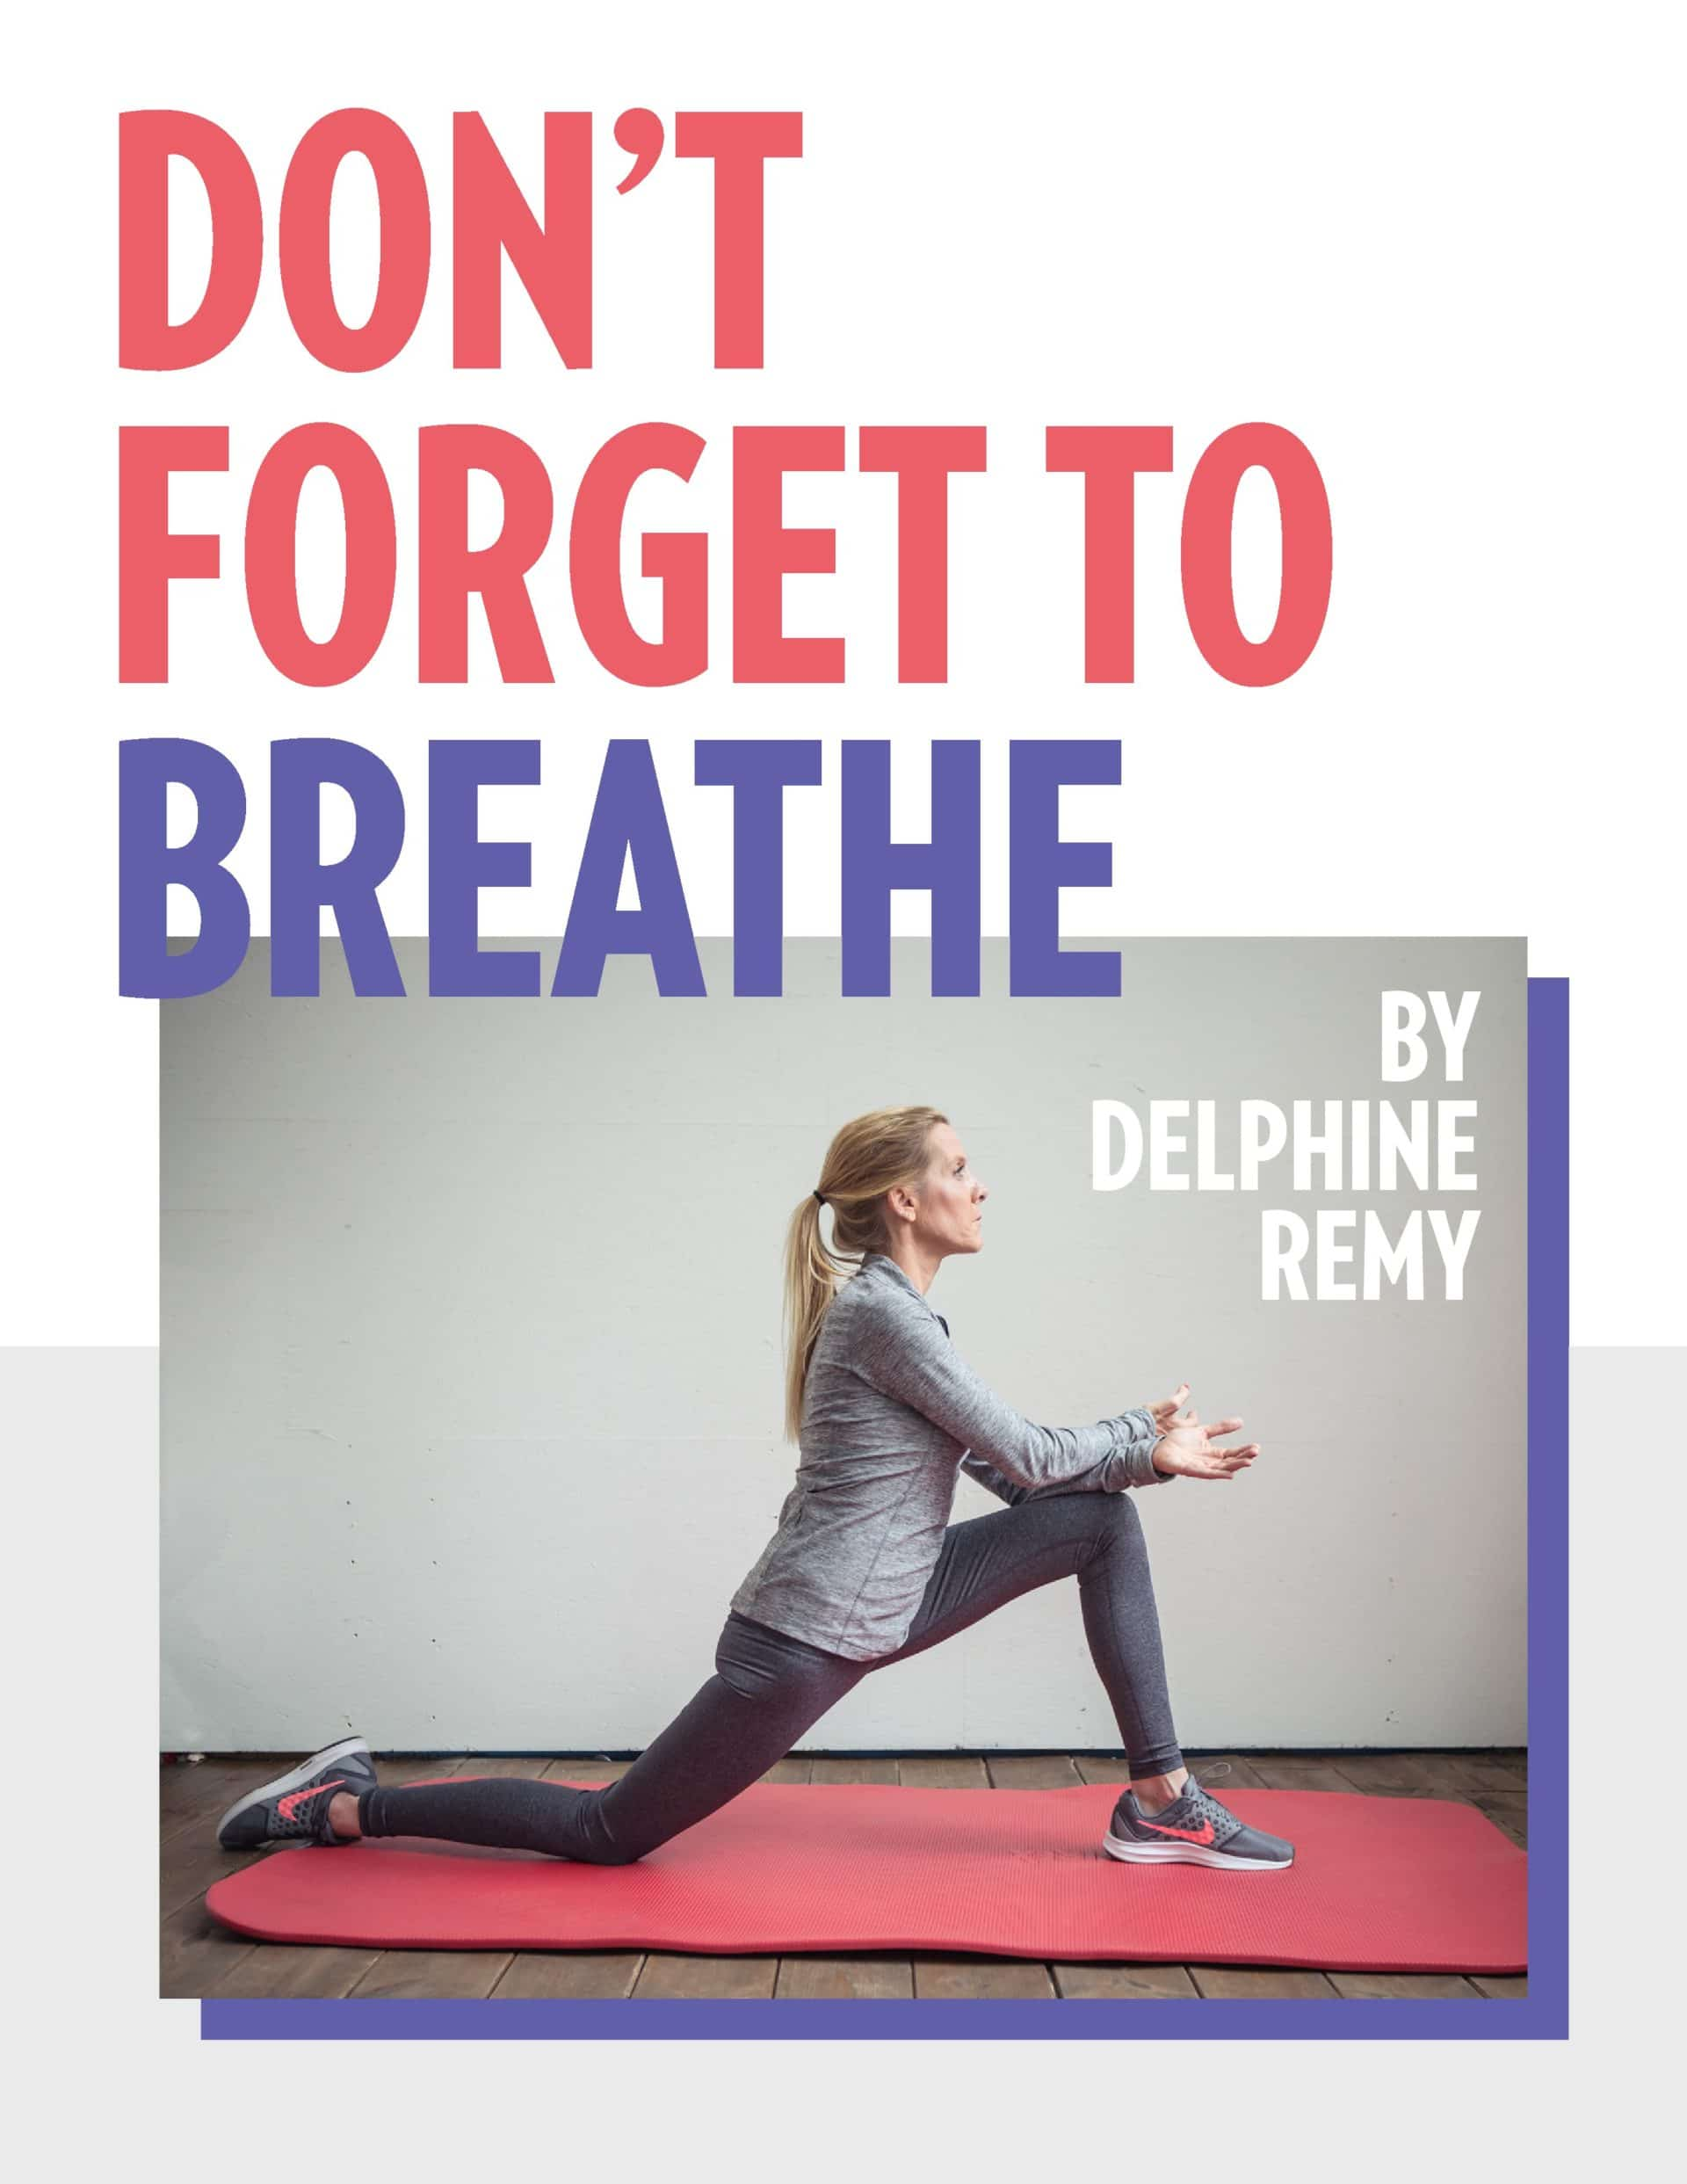 DON'T FORGET TO BREATHE - Delphine Remy